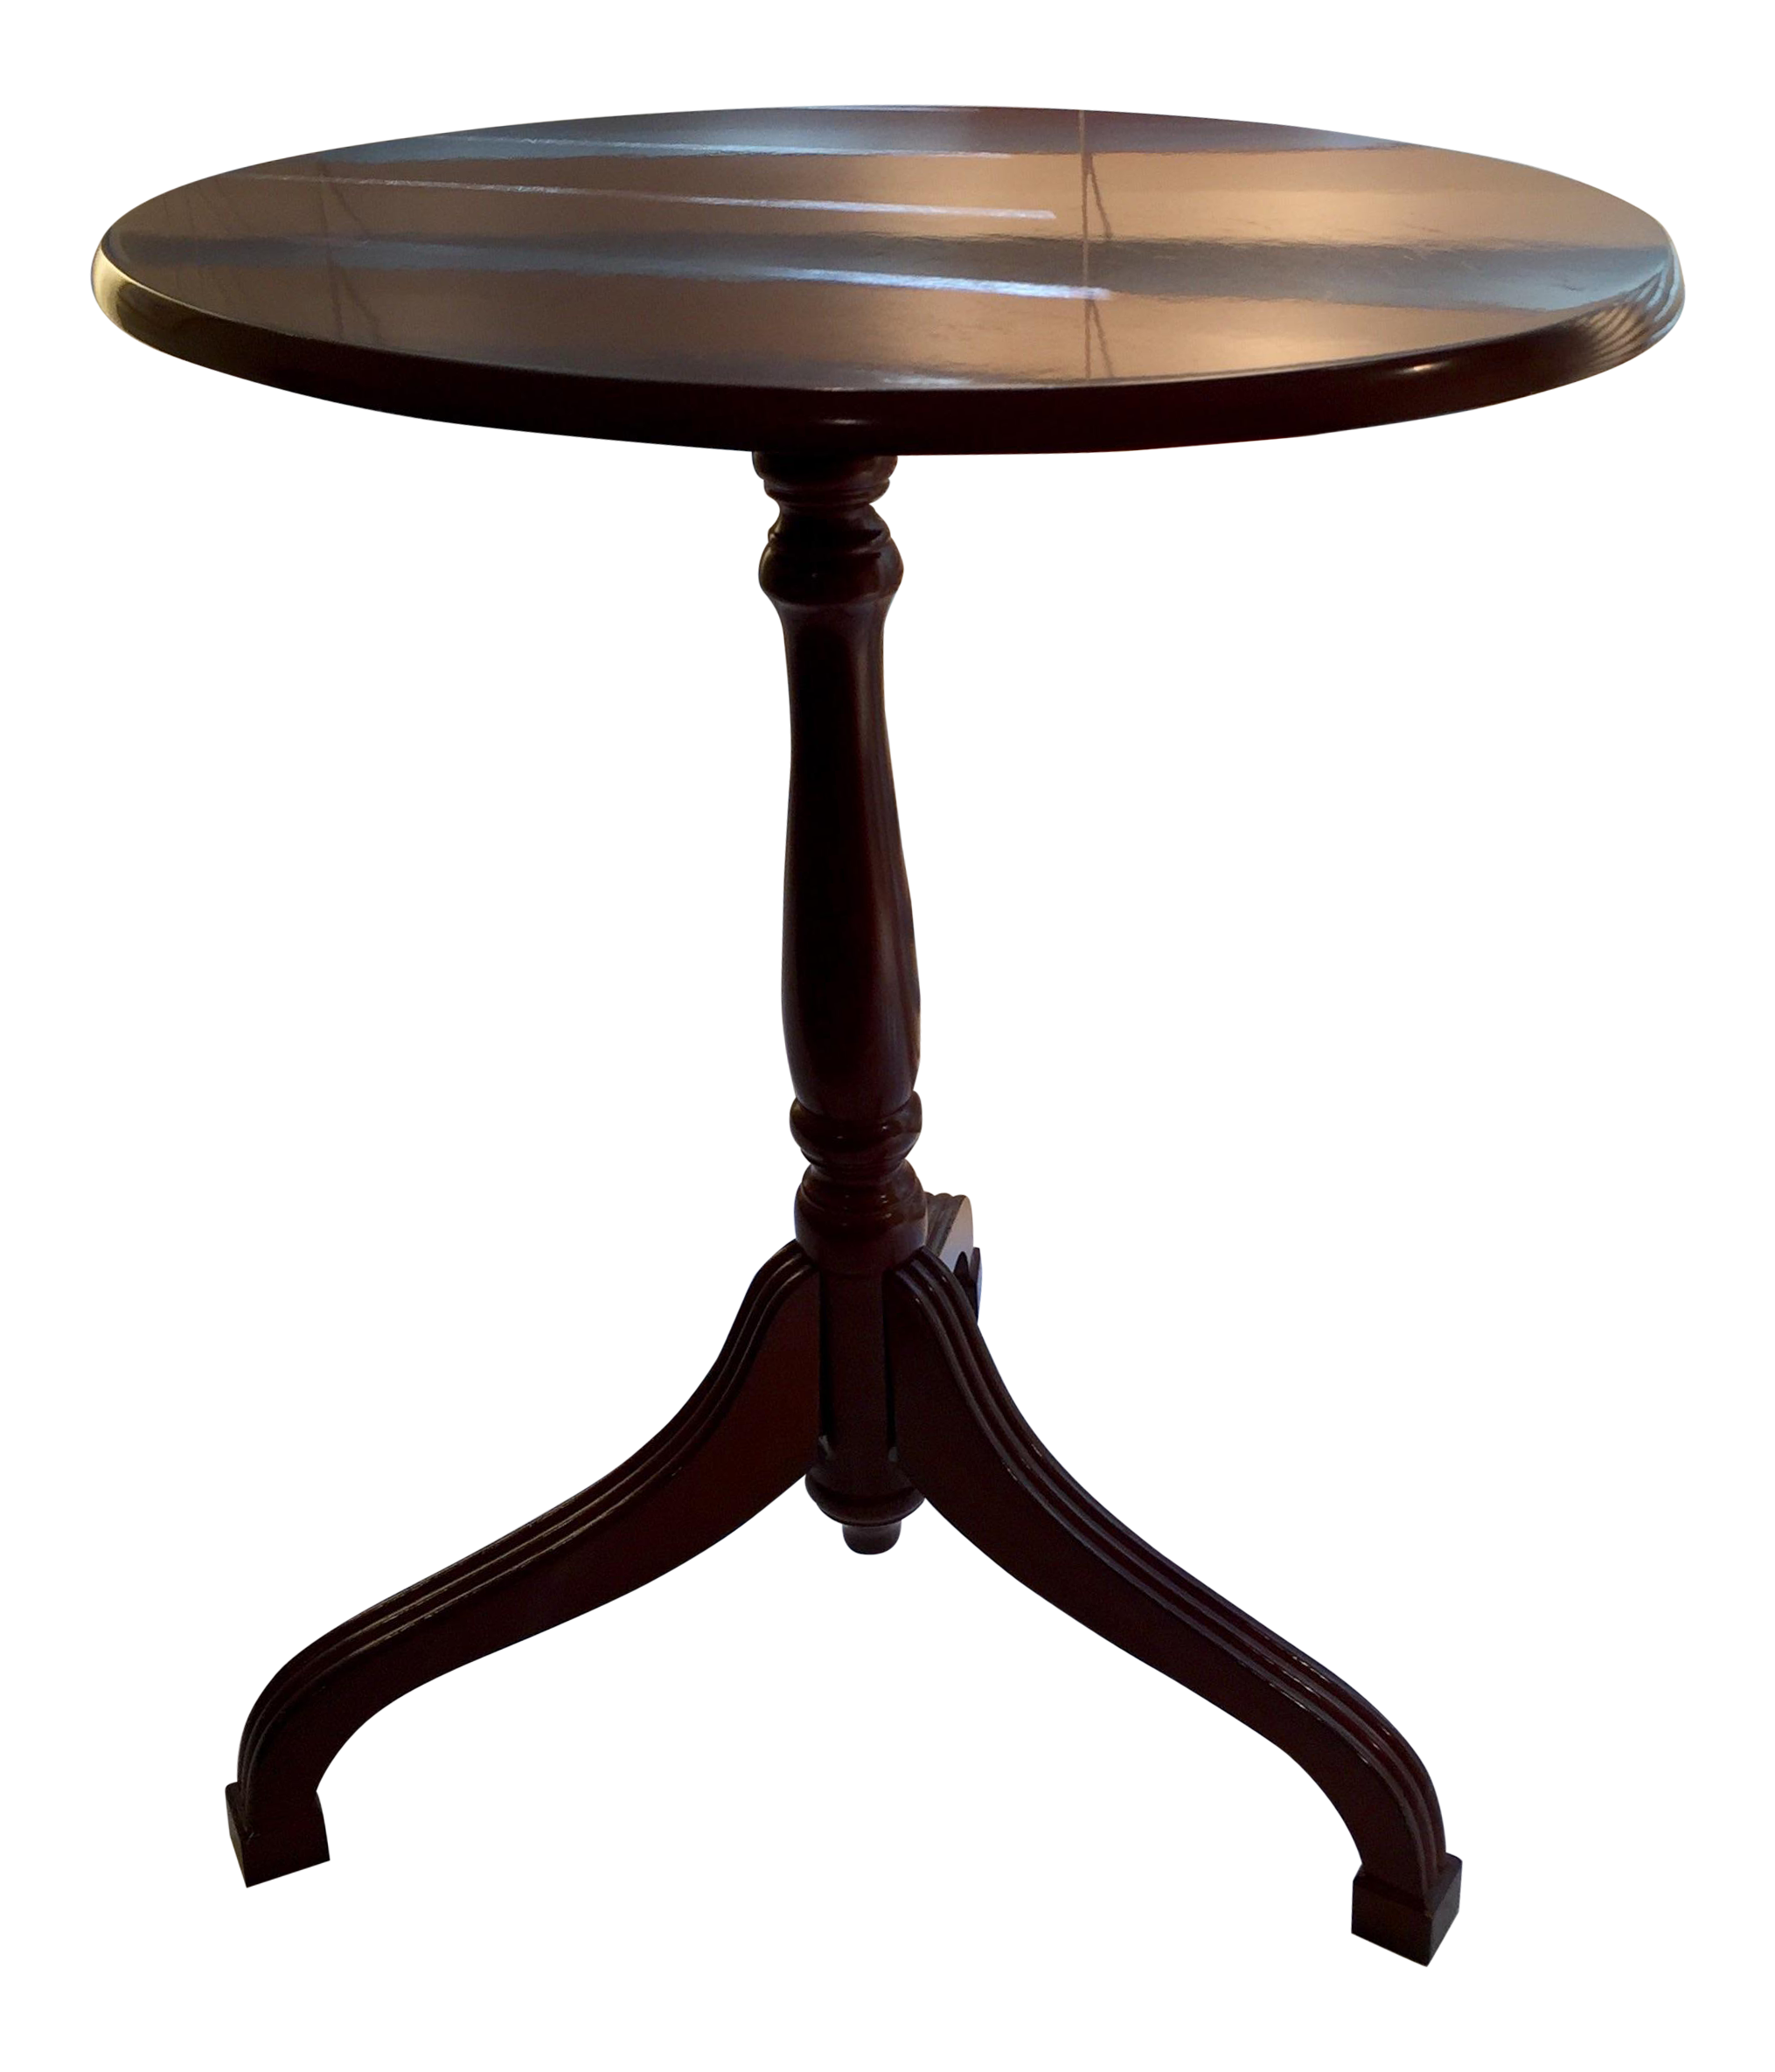 bombay company flip top cherry tripod side table chairish marble accent white round clearance wicker outdoor furniture small glass lamps tall bedside nautical hampton bay patio